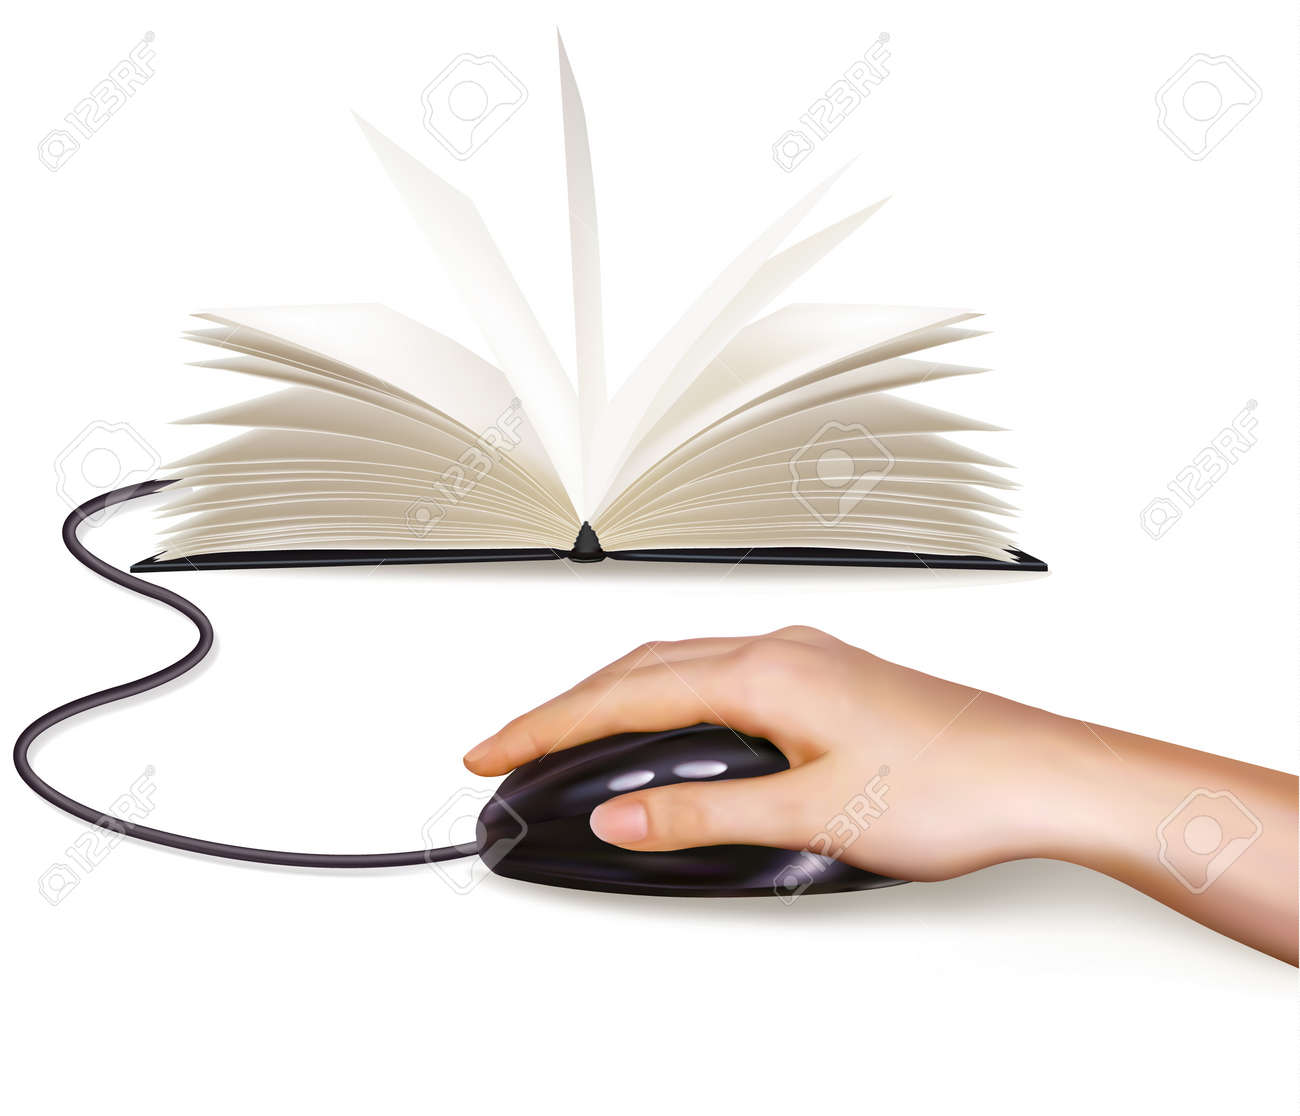 Hand with computer mouse and books  Vector illustration Stock Vector - 12595565